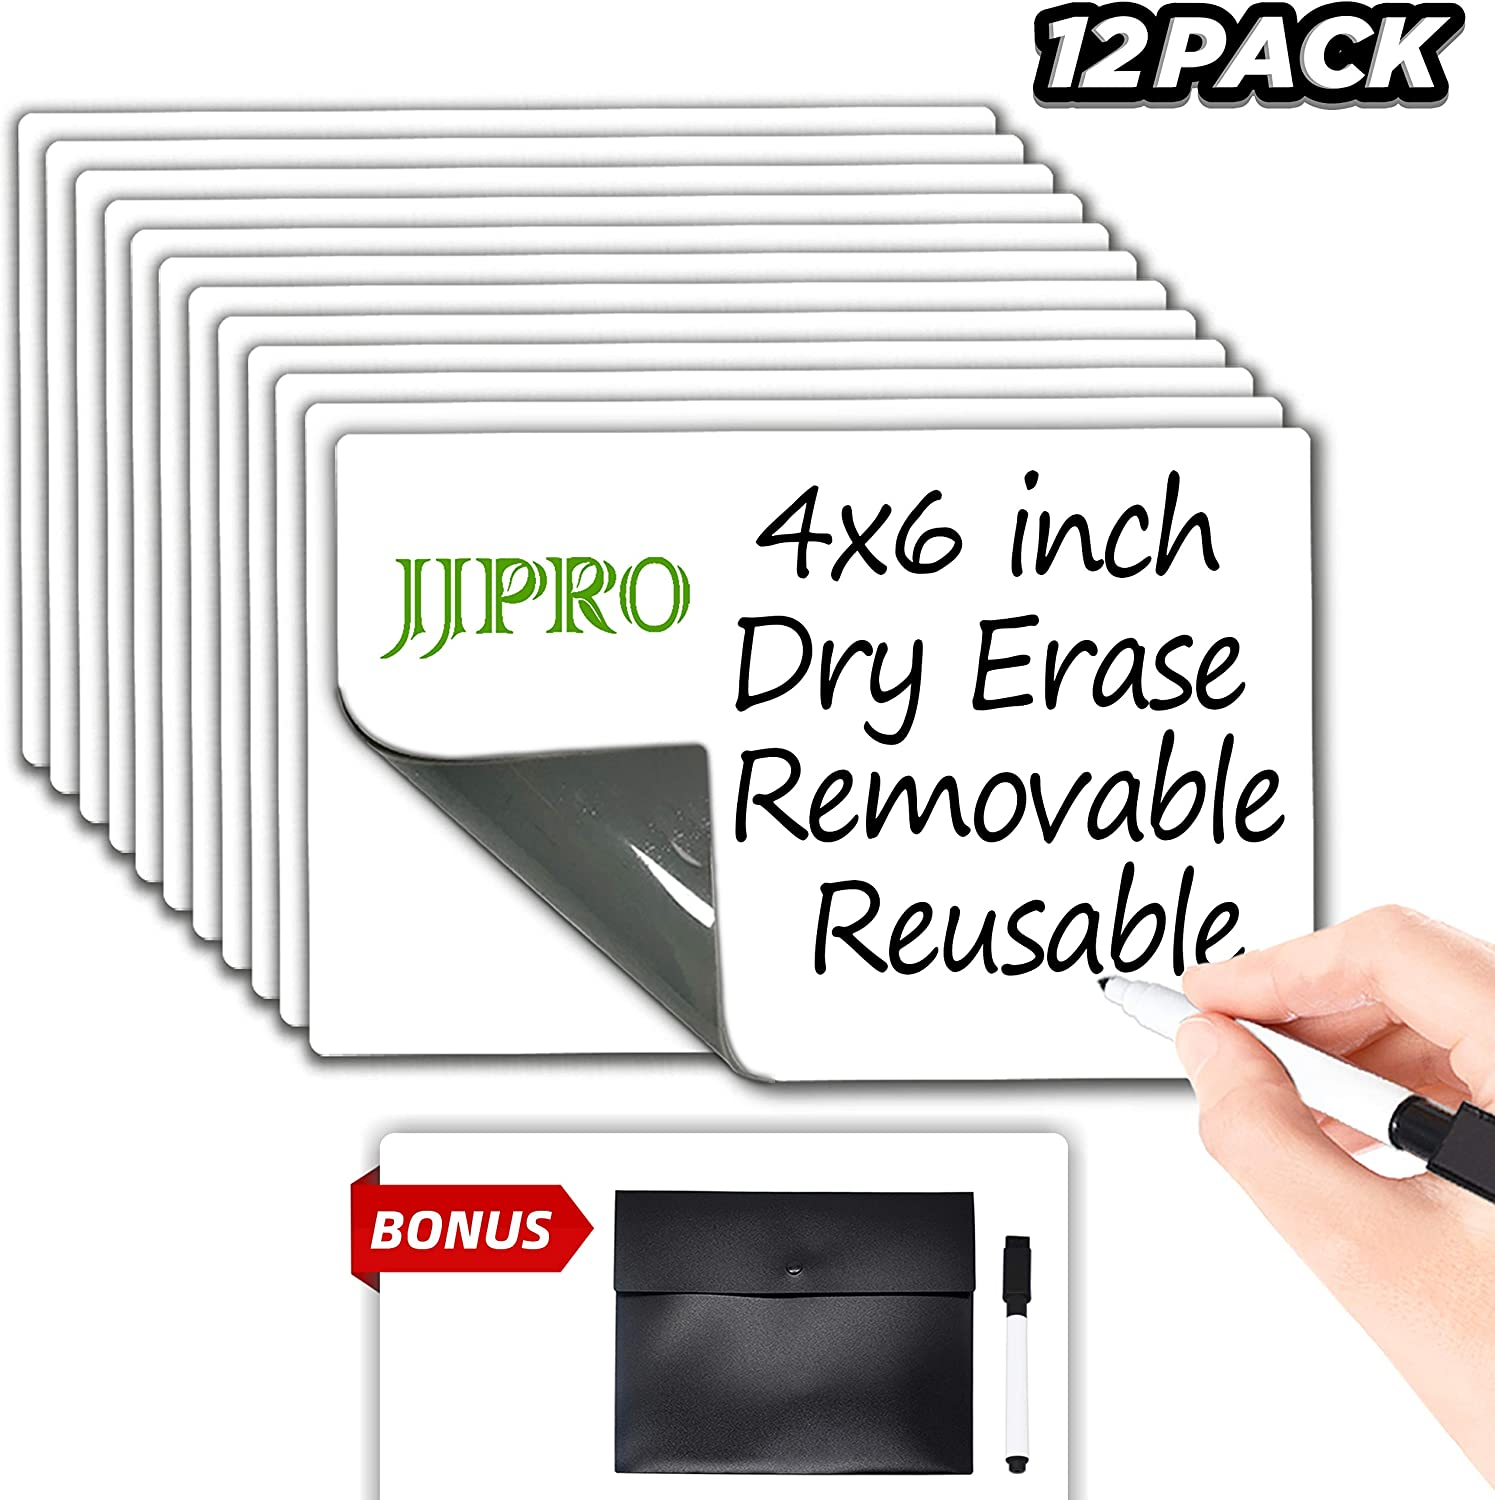 Dry Erase Sticky Notes - Reusable Whiteboard Stickers 4